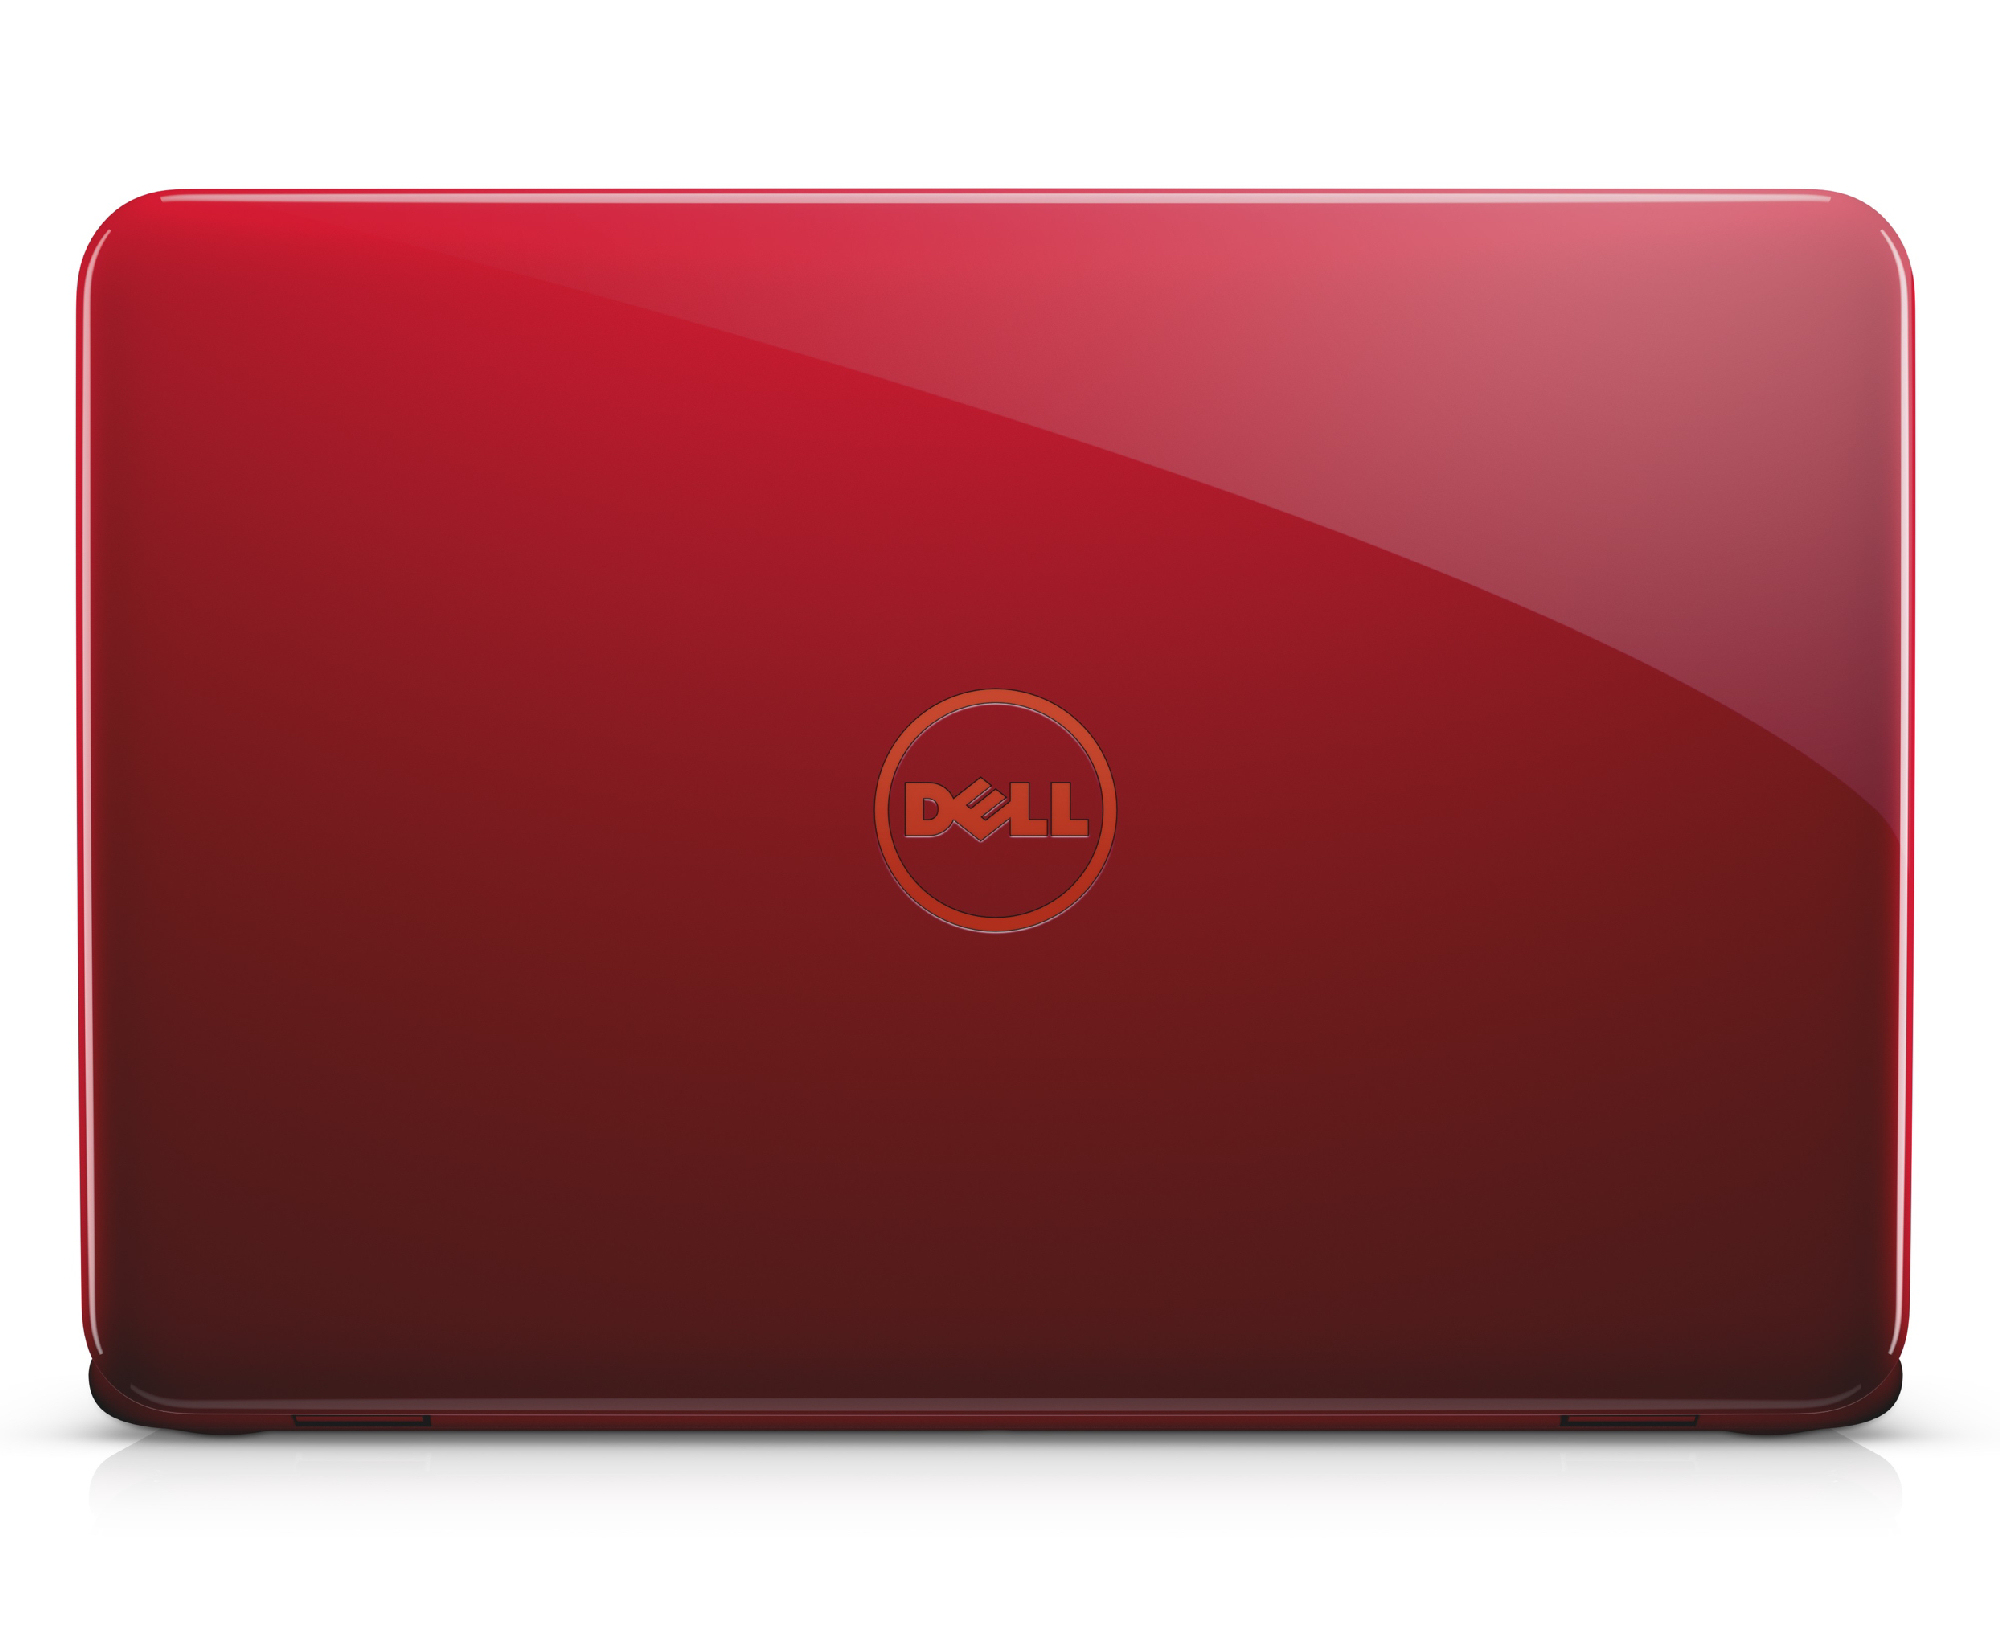 Does the dell inspiron 530 have a memory card slot